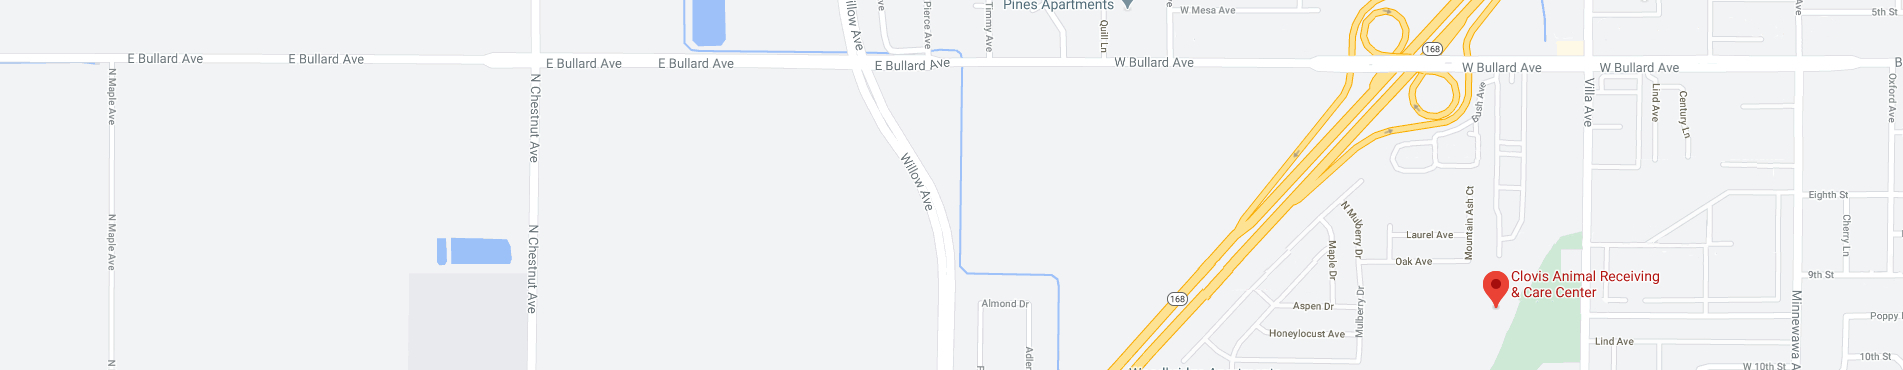 Map of Clovis Animal Services location